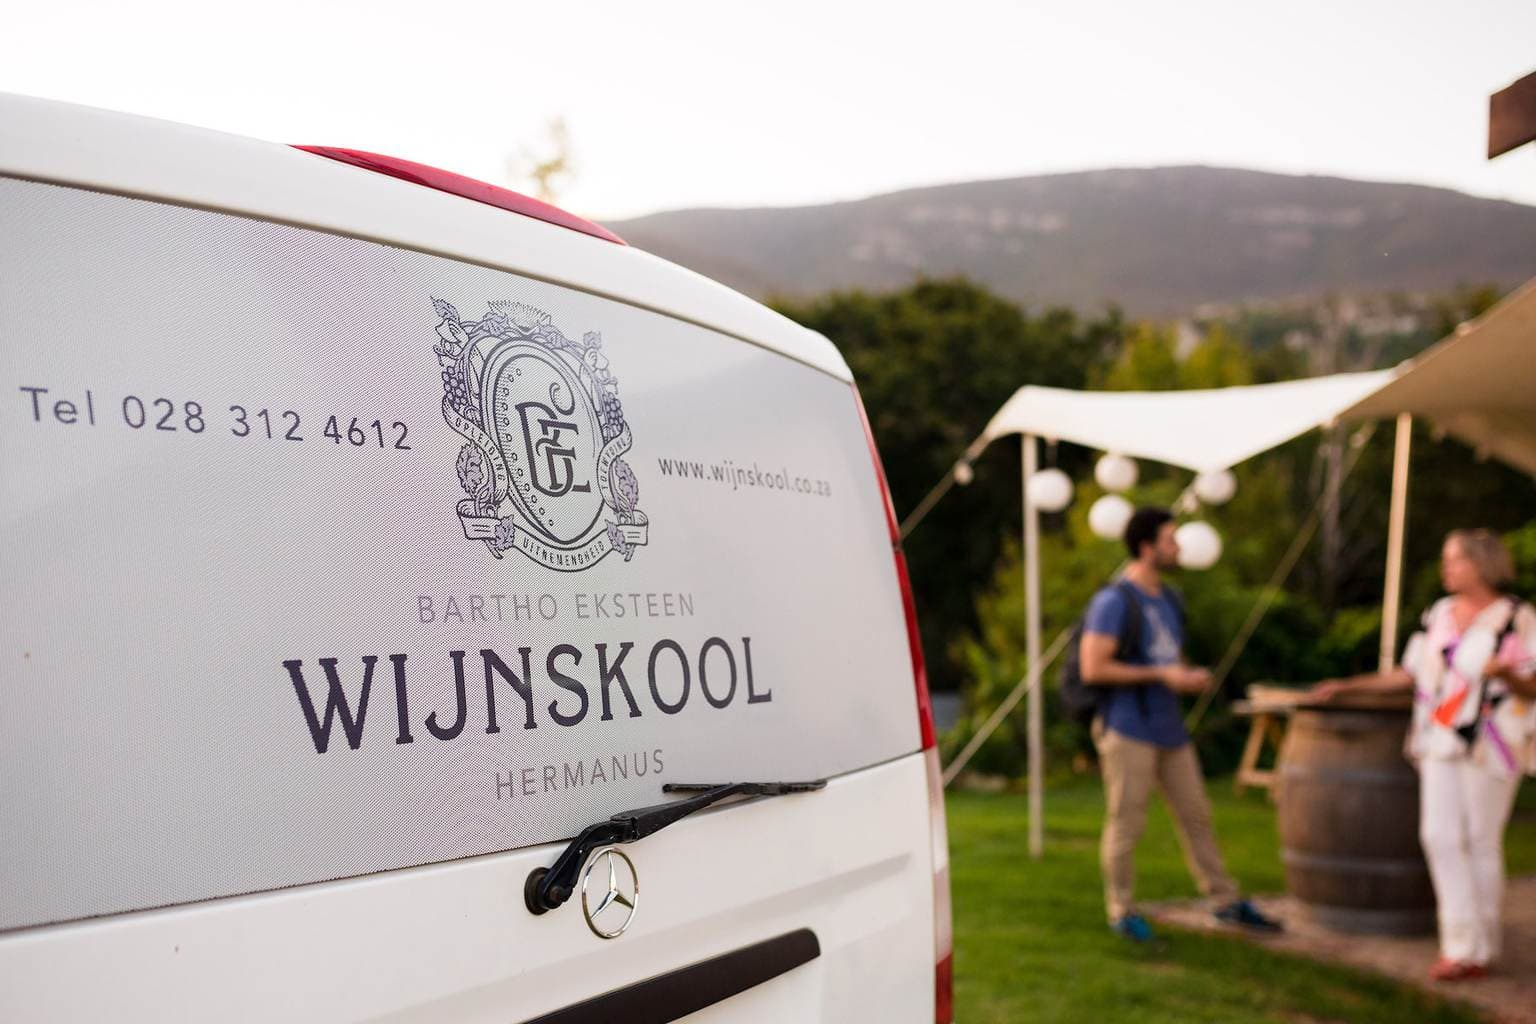 Wijnskool Car